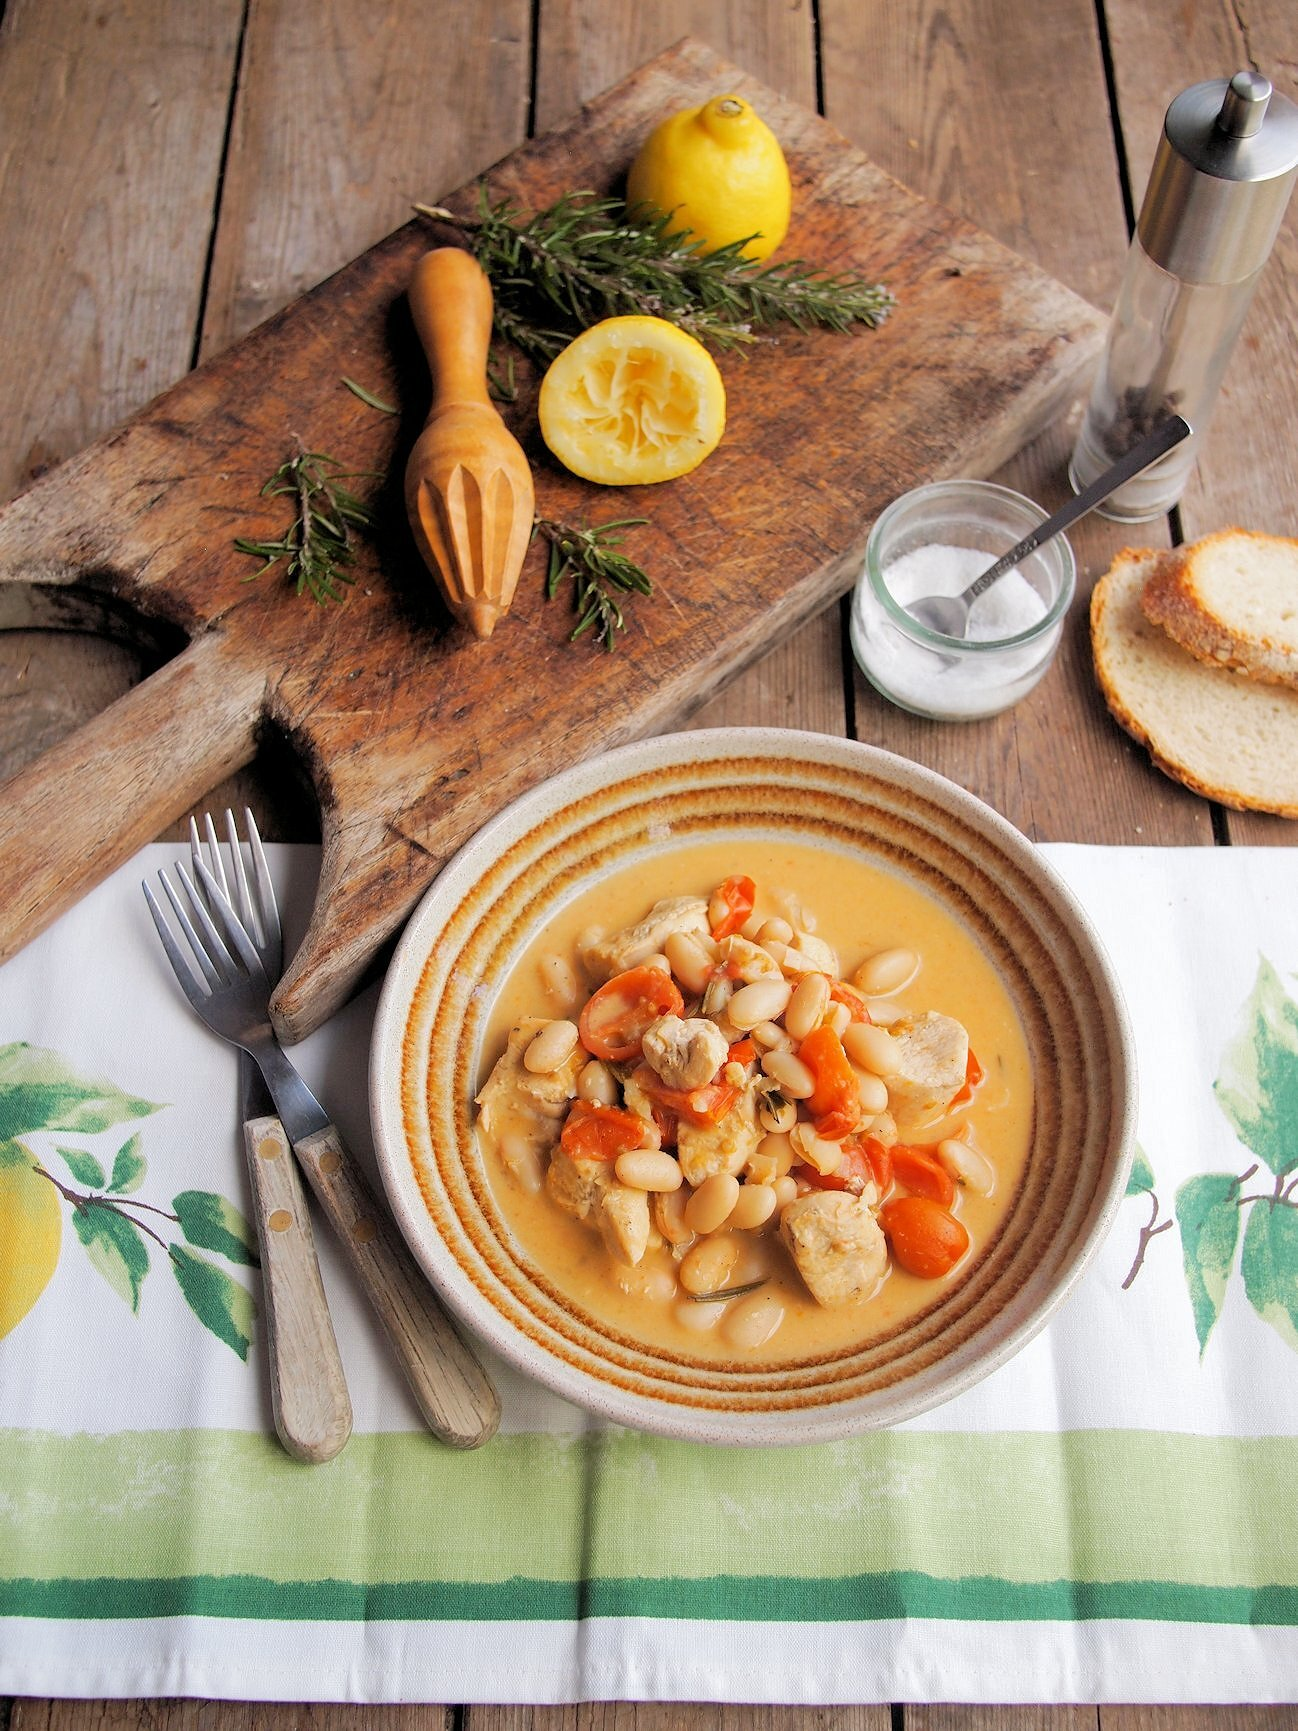 5:2 Diet Fasting and Feasting! Lemon Chicken with Cannellini Beans and Rosemary Recipe